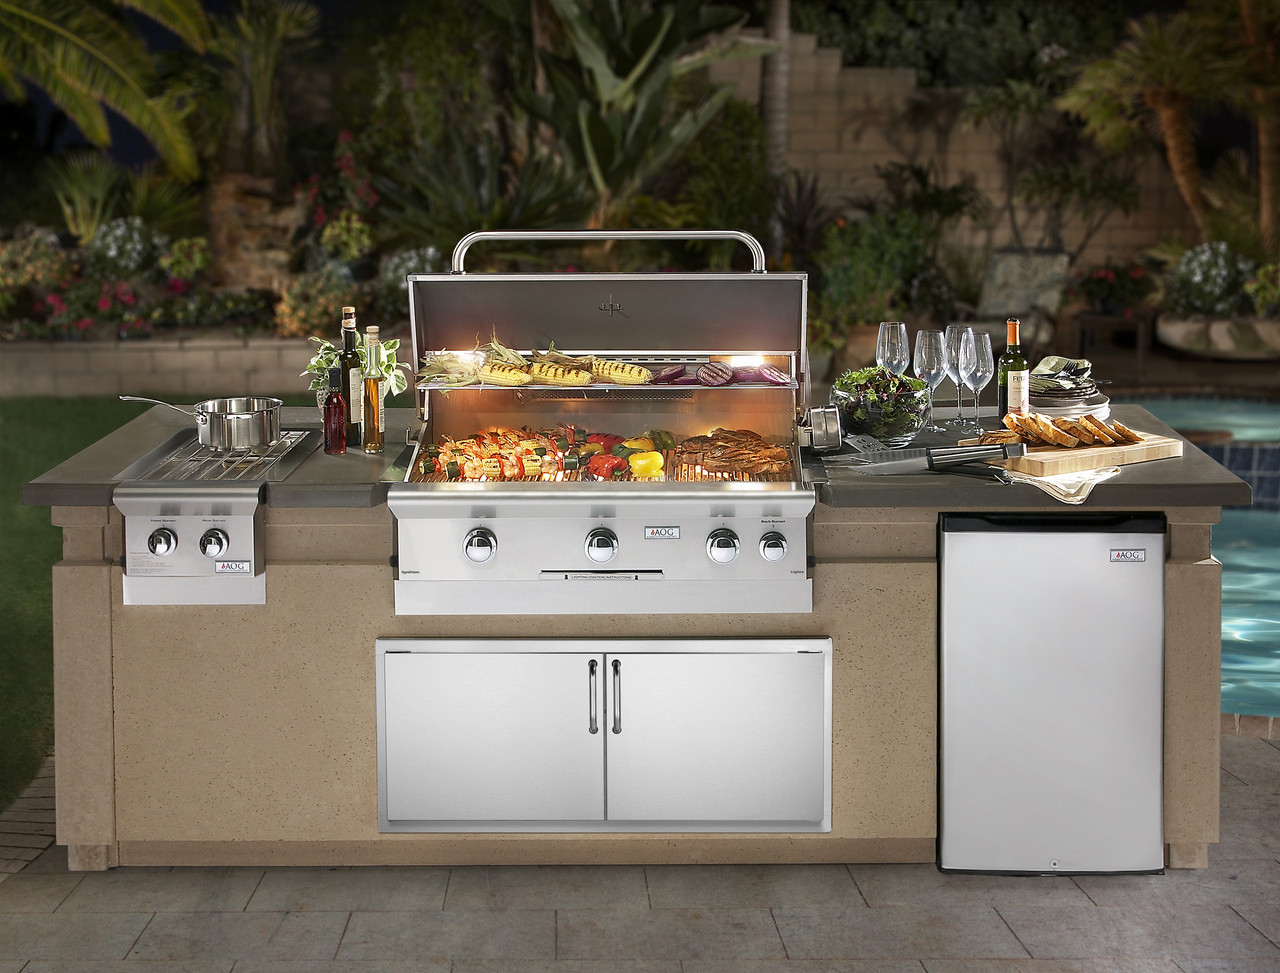 built in outdoor kitchen build your own aog grills add style cooking excellence to your outdoor kitchen american grill 36